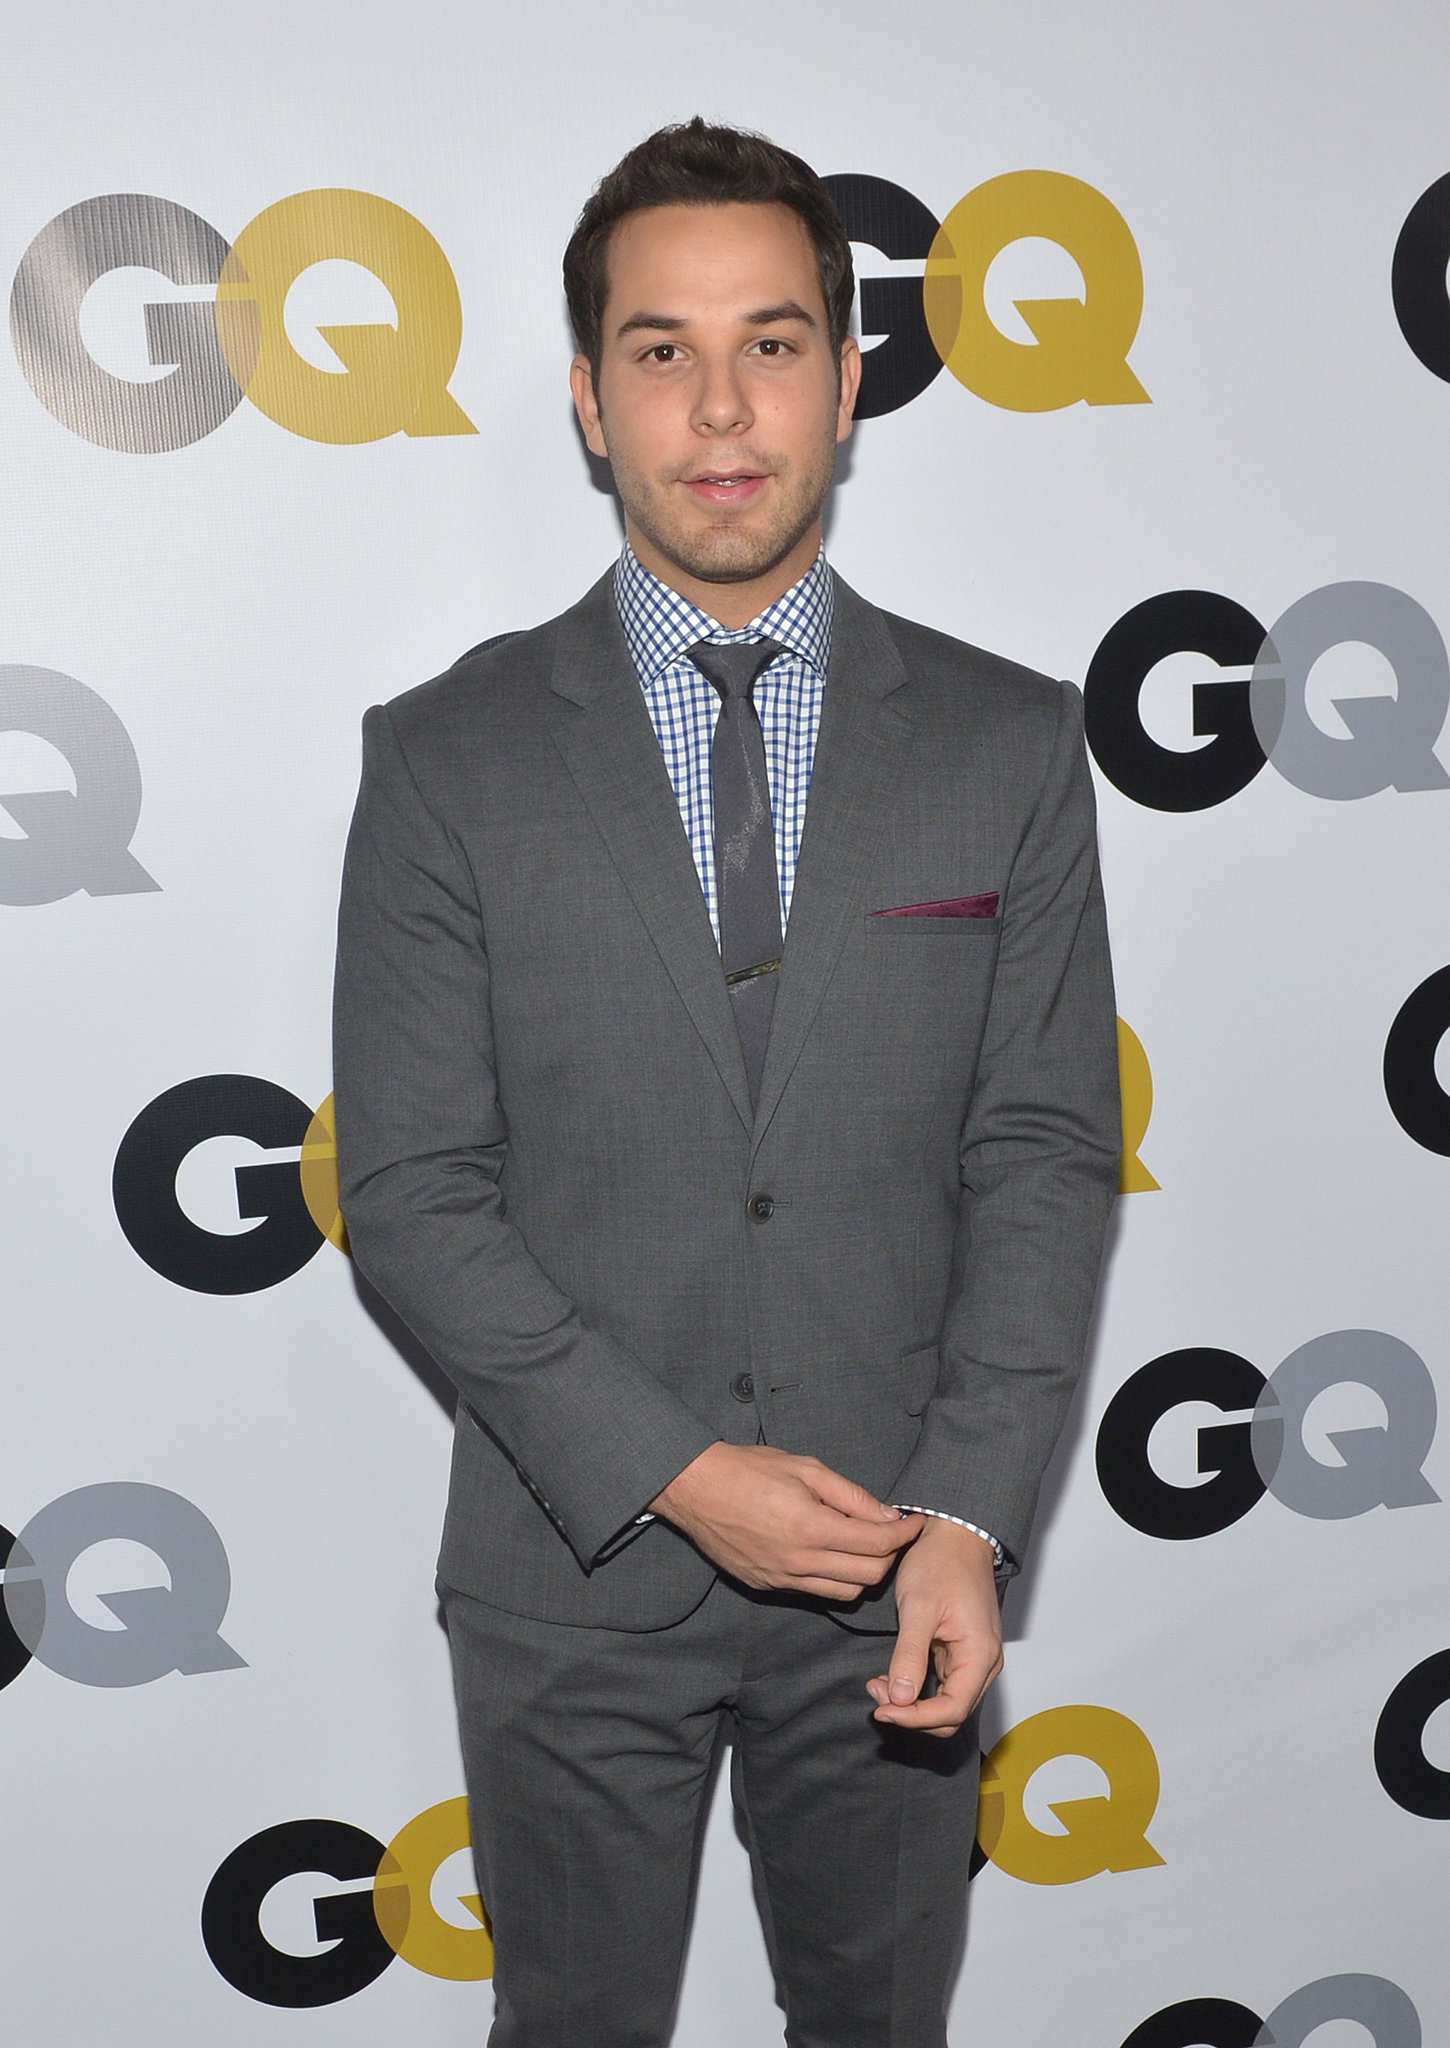 Skylar Astin arrived for the GQ Men of the Year party in LA.